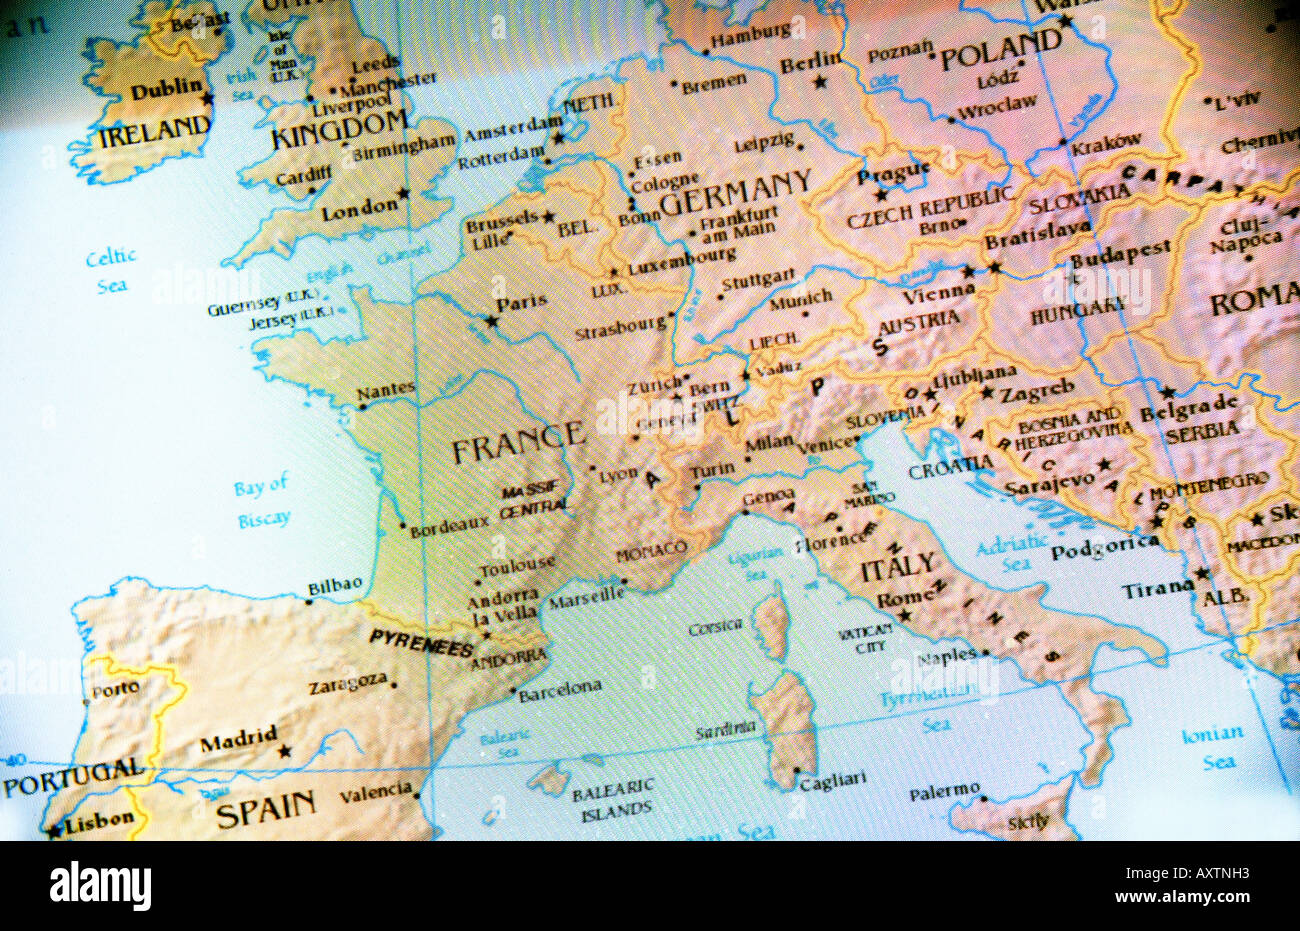 Current Map Of Europe Stock Photo 9666514 Alamy